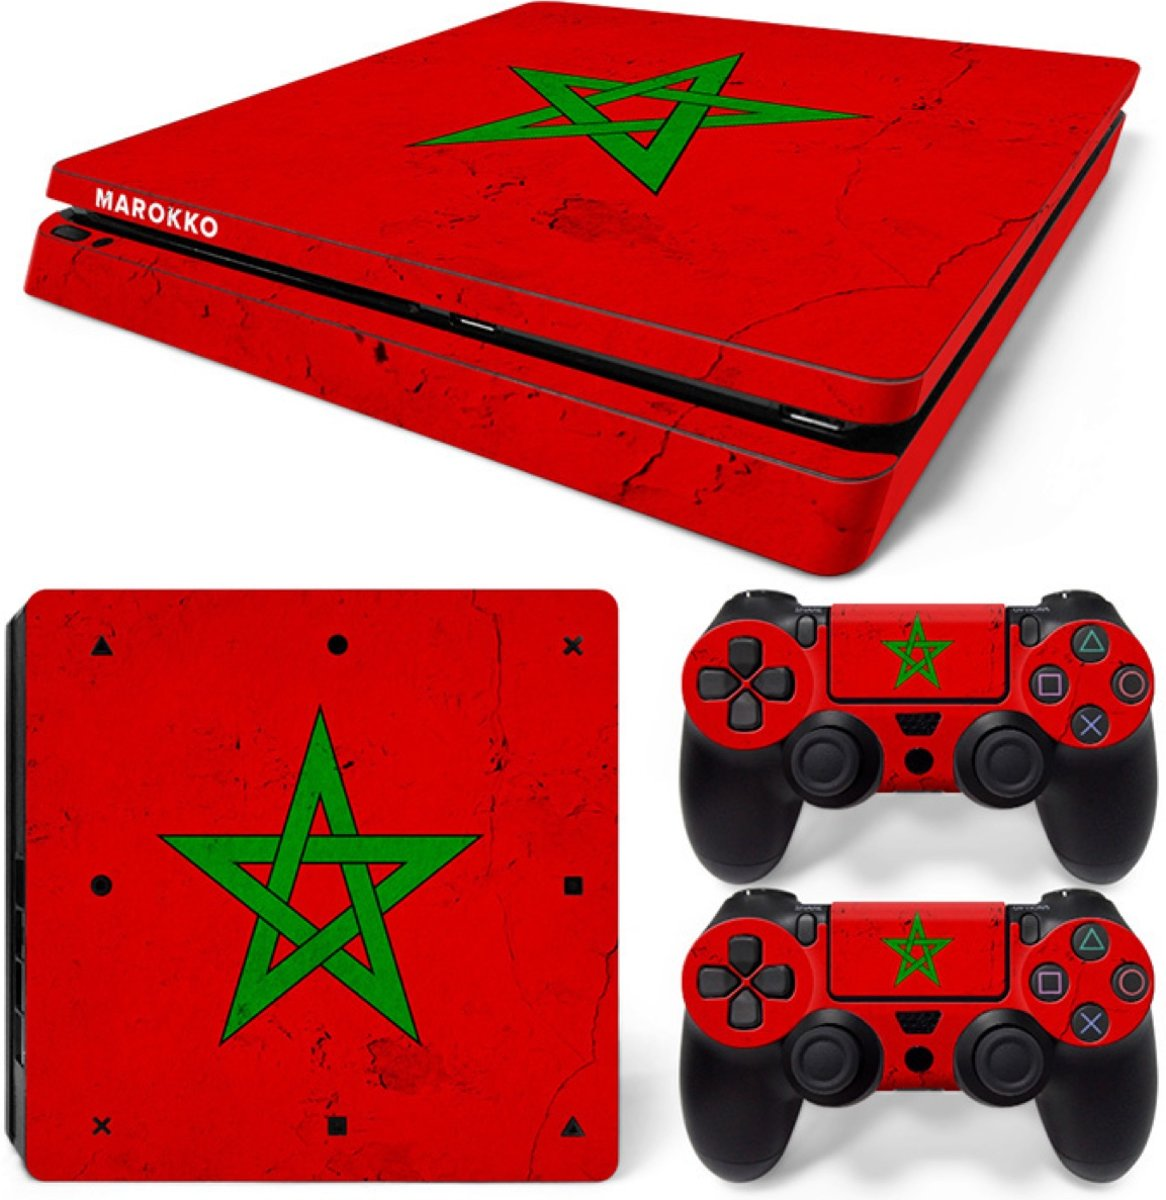 Marokko - PS4 Slim Console Skins PlayStation Stickers